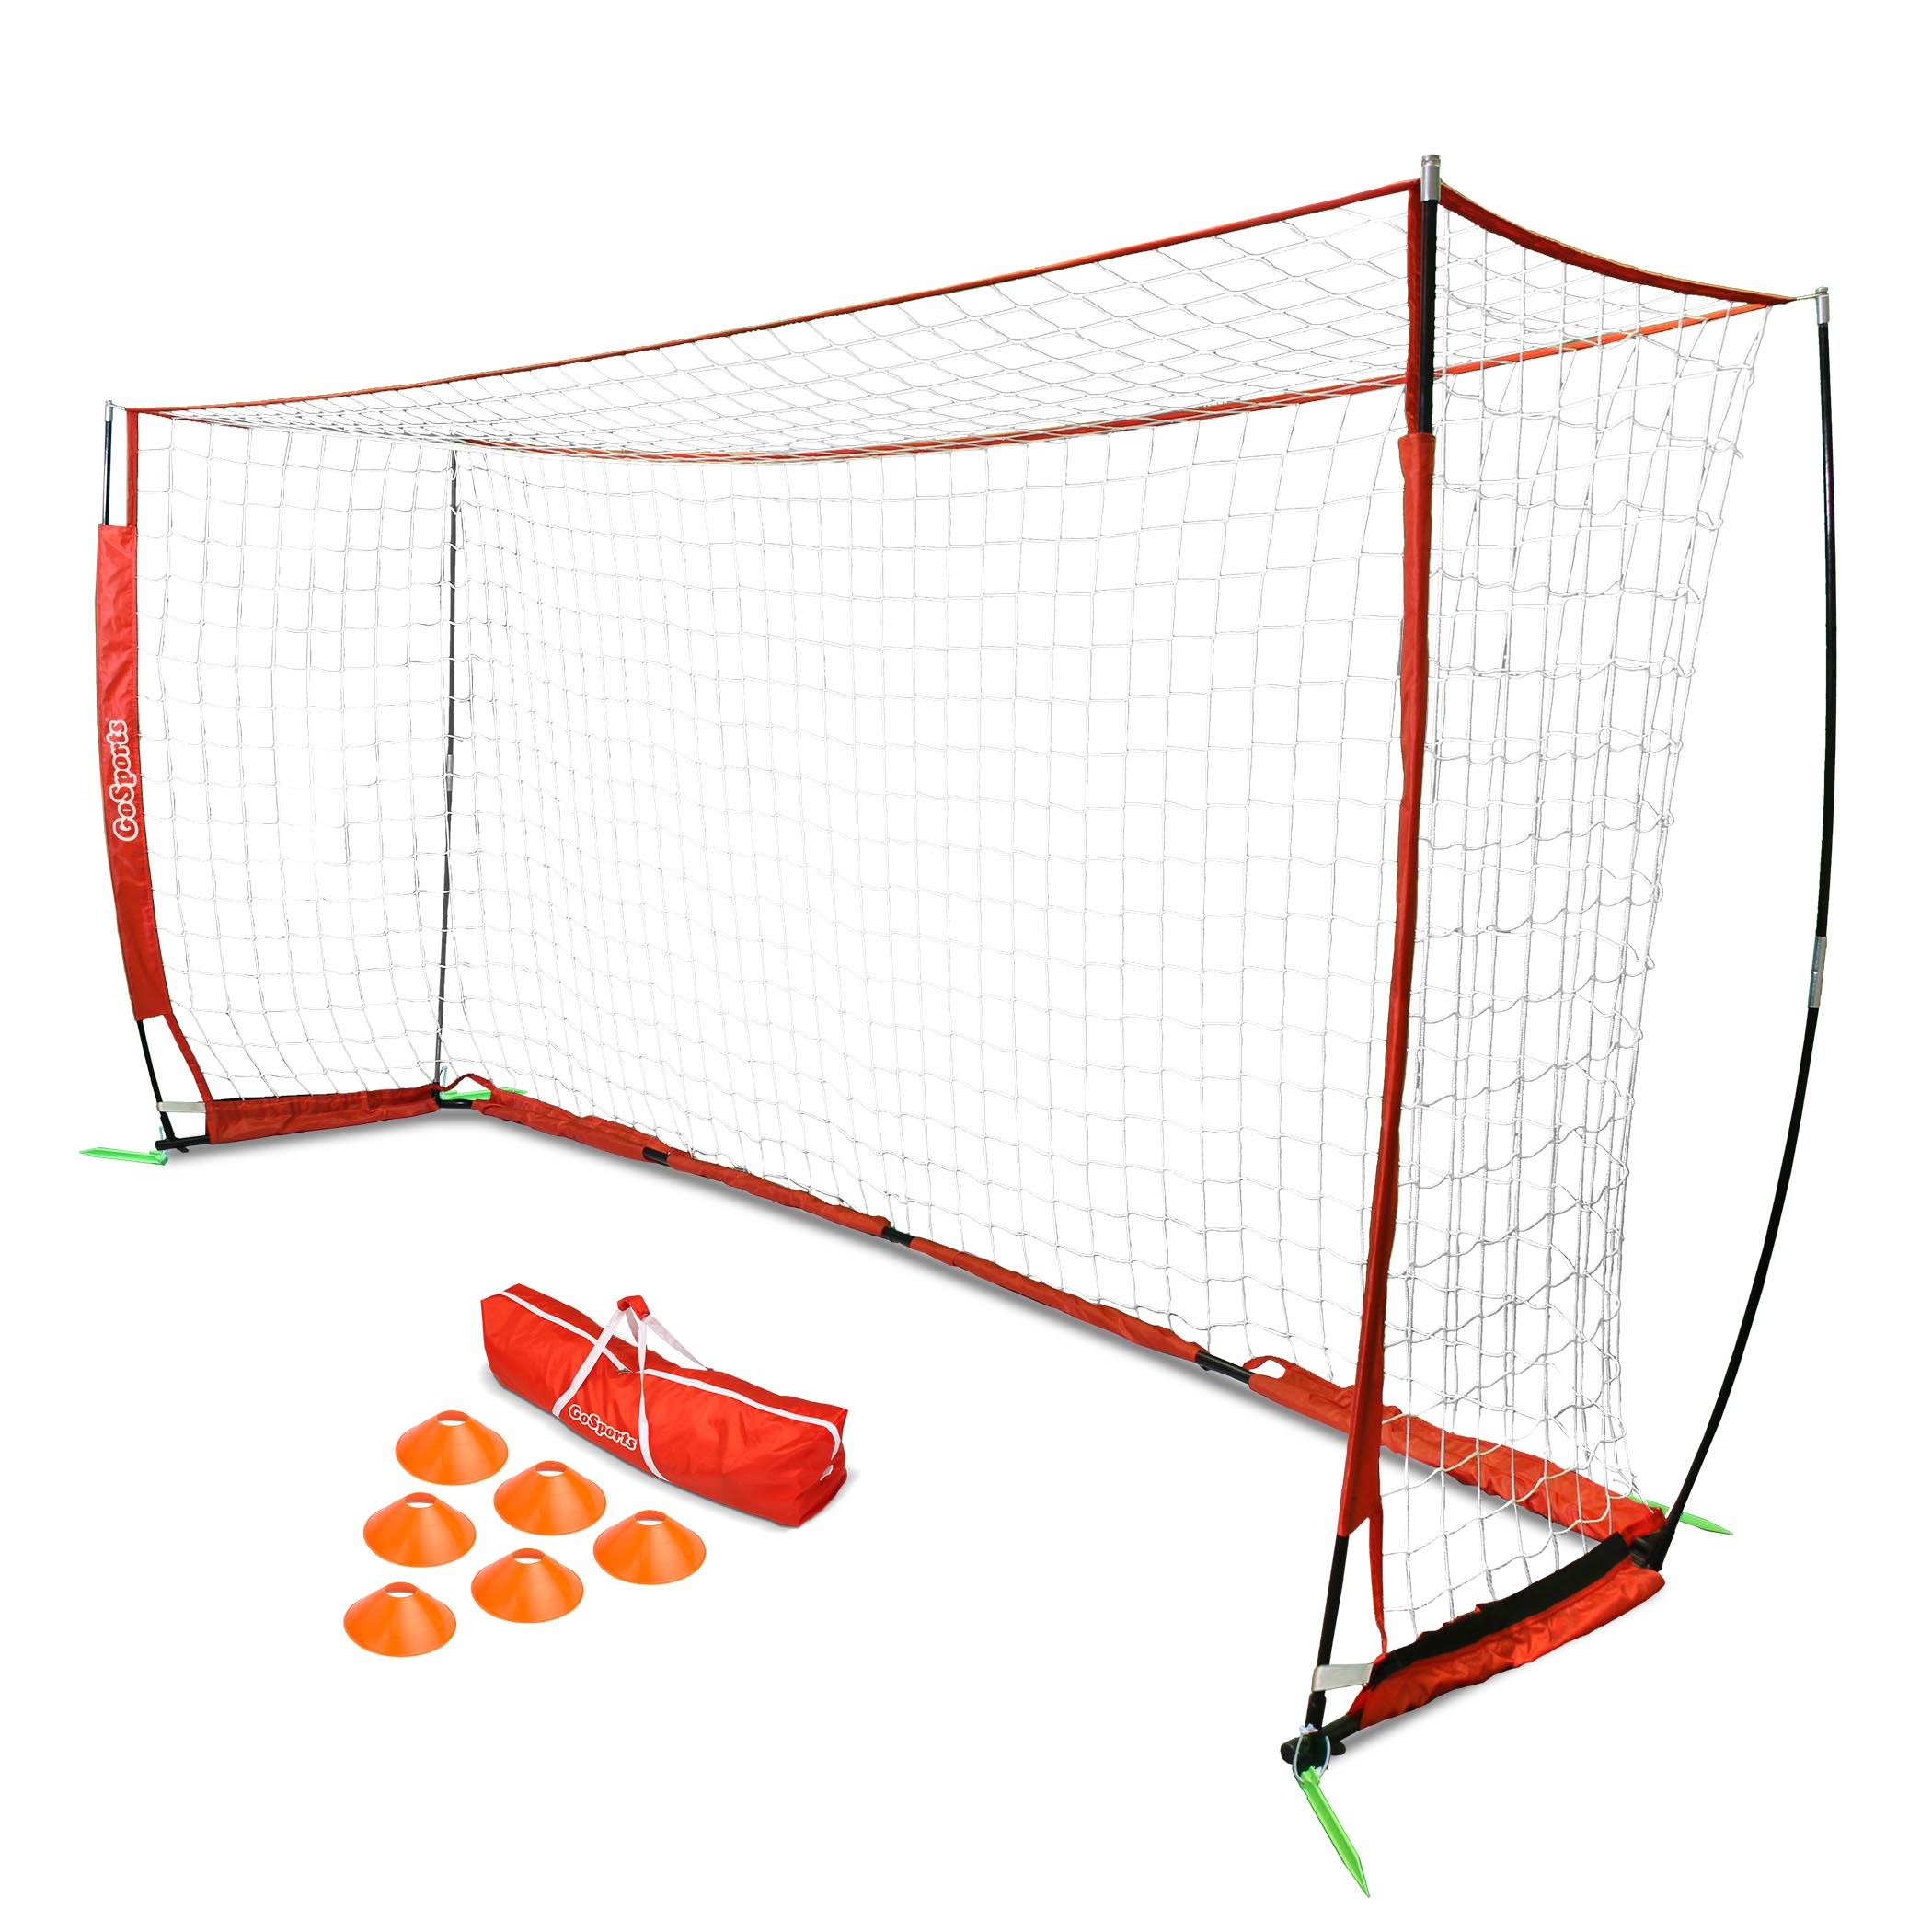 GoSports 12' ELITE Foldable Soccer Goal Net - Includes 1 12'x6' Goal, 6 Training Cones & Portable Carrying Case